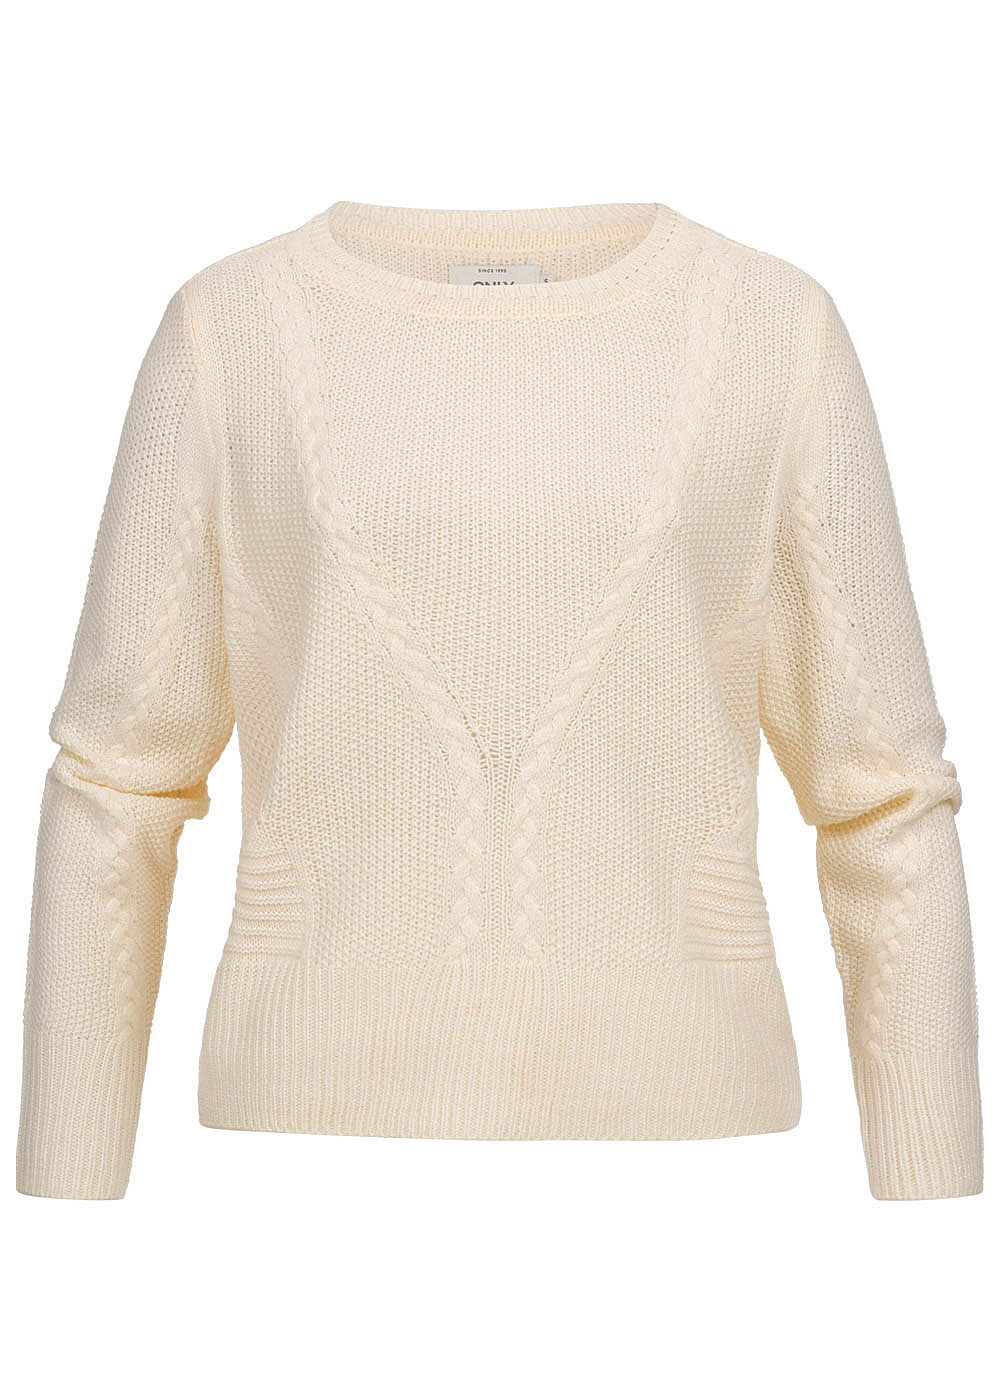 ONLY Damen Cable Knit Pullover cloud dancer weiss - Art.-Nr.: 19083336